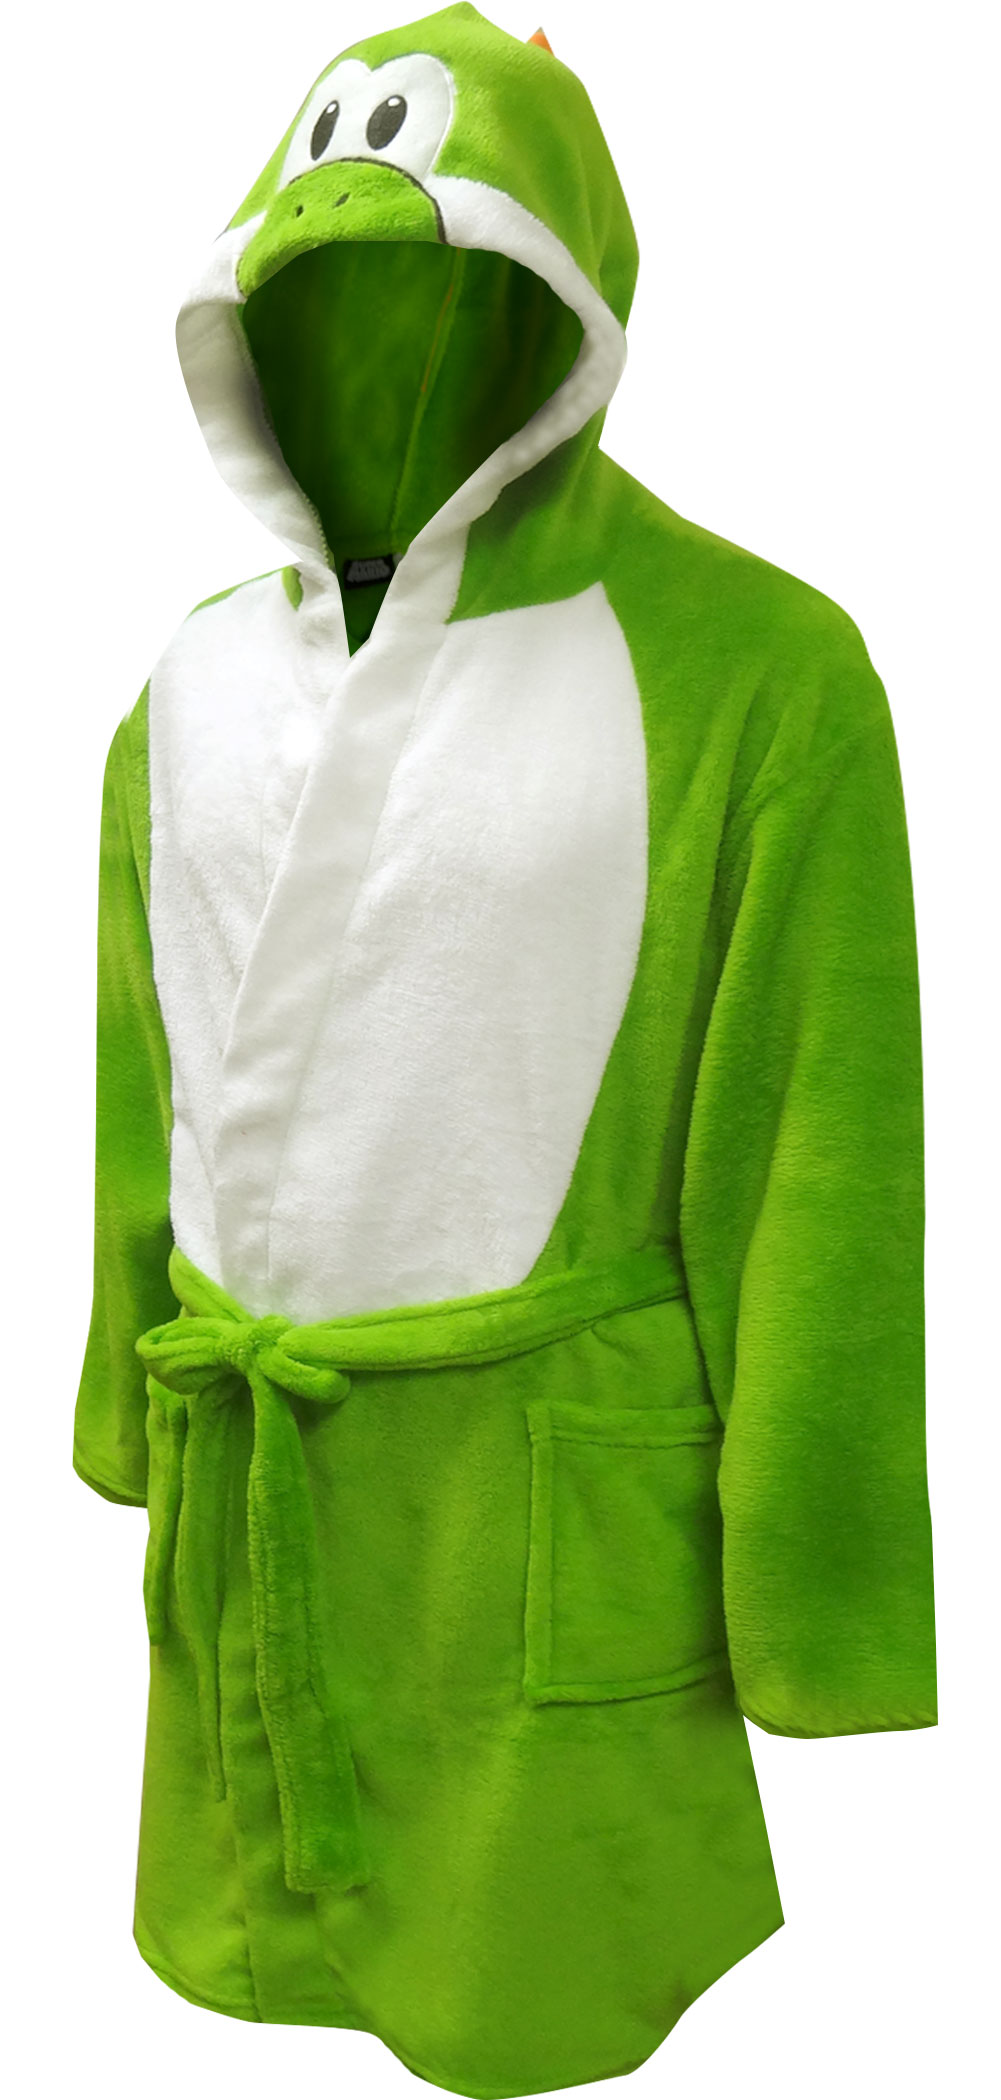 Image of Nintendo Super Mario Yoshi Plush Adult Robe for men